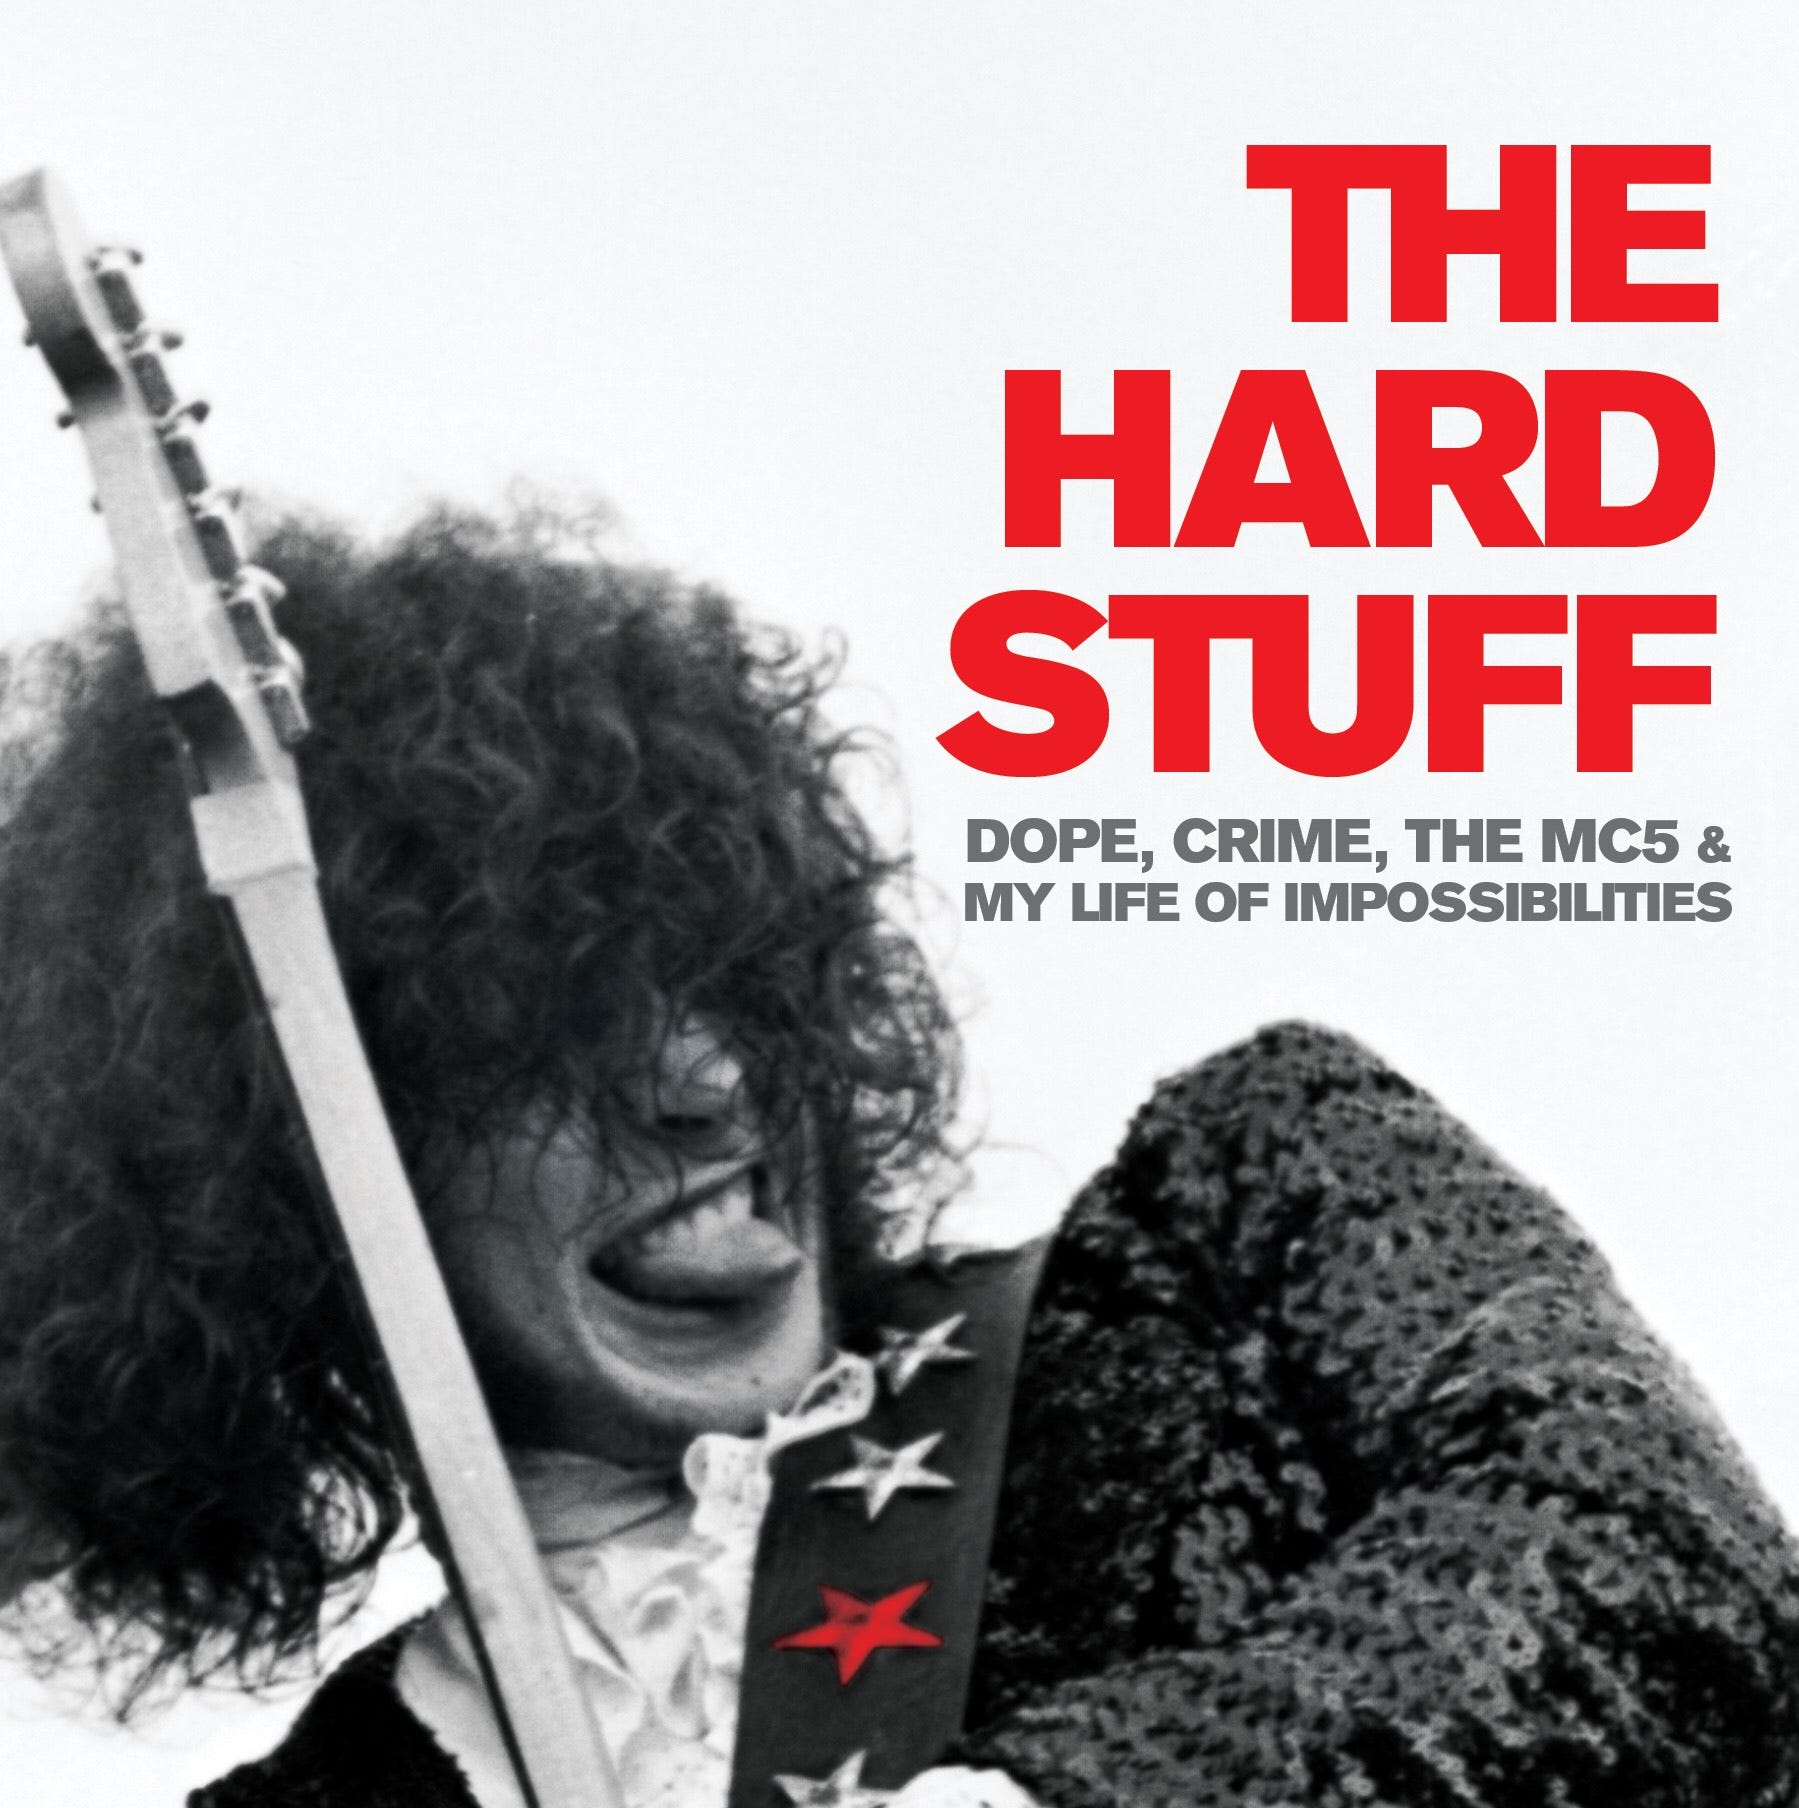 Wayne Kramer book excerpt: Drug deals, dope fiends and 'The Hard Stuff'